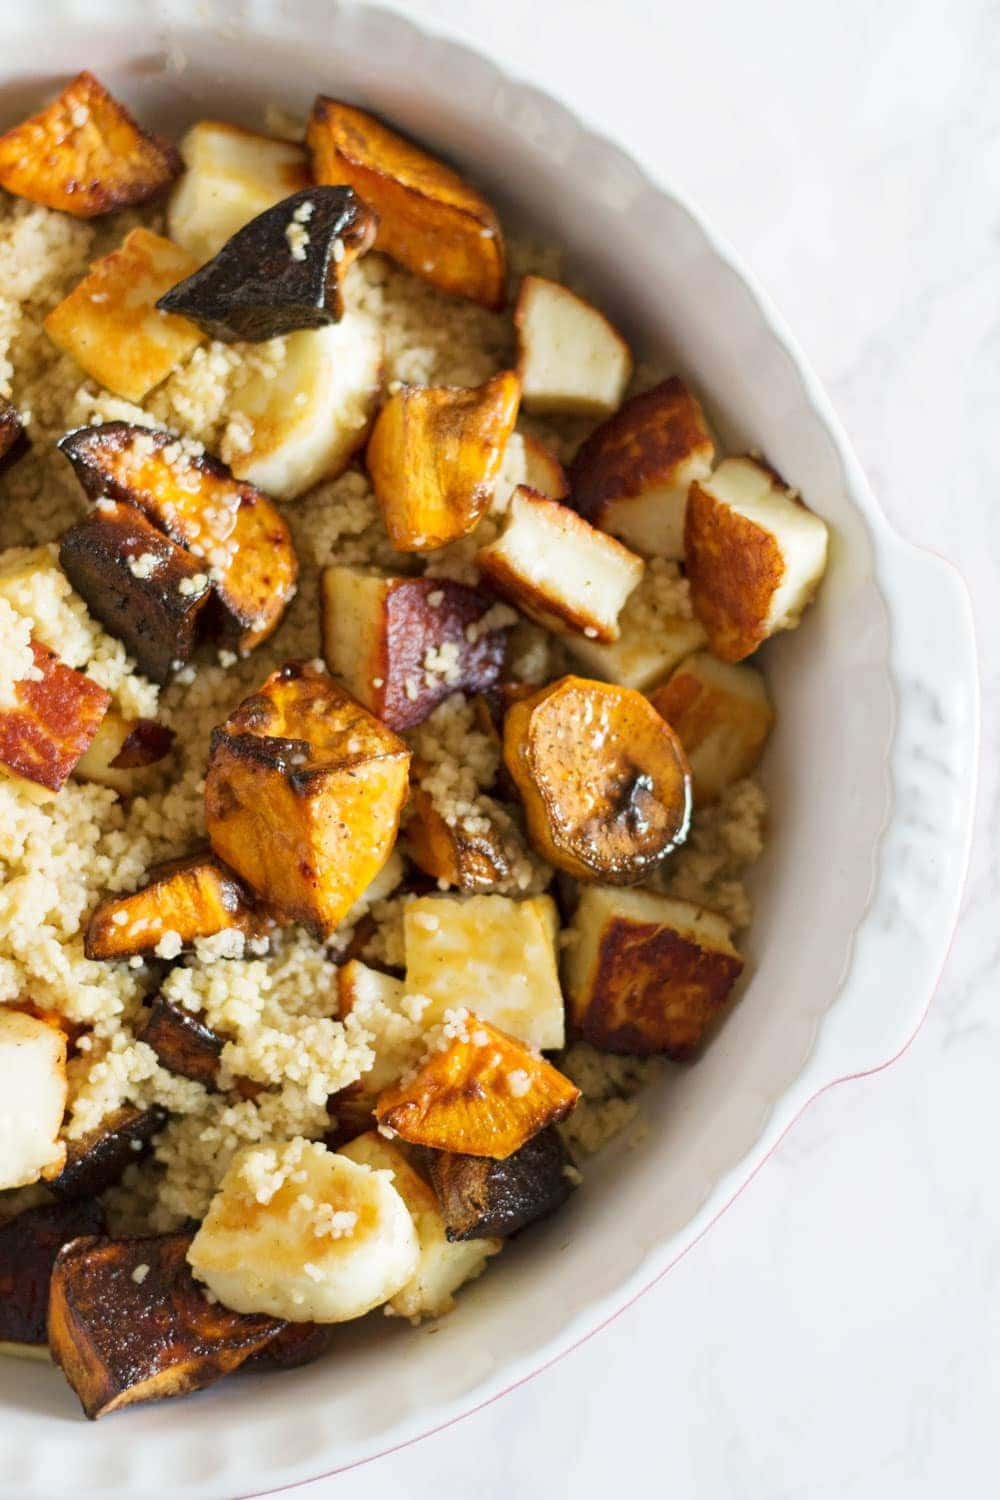 how to cook halloumi in the microwave